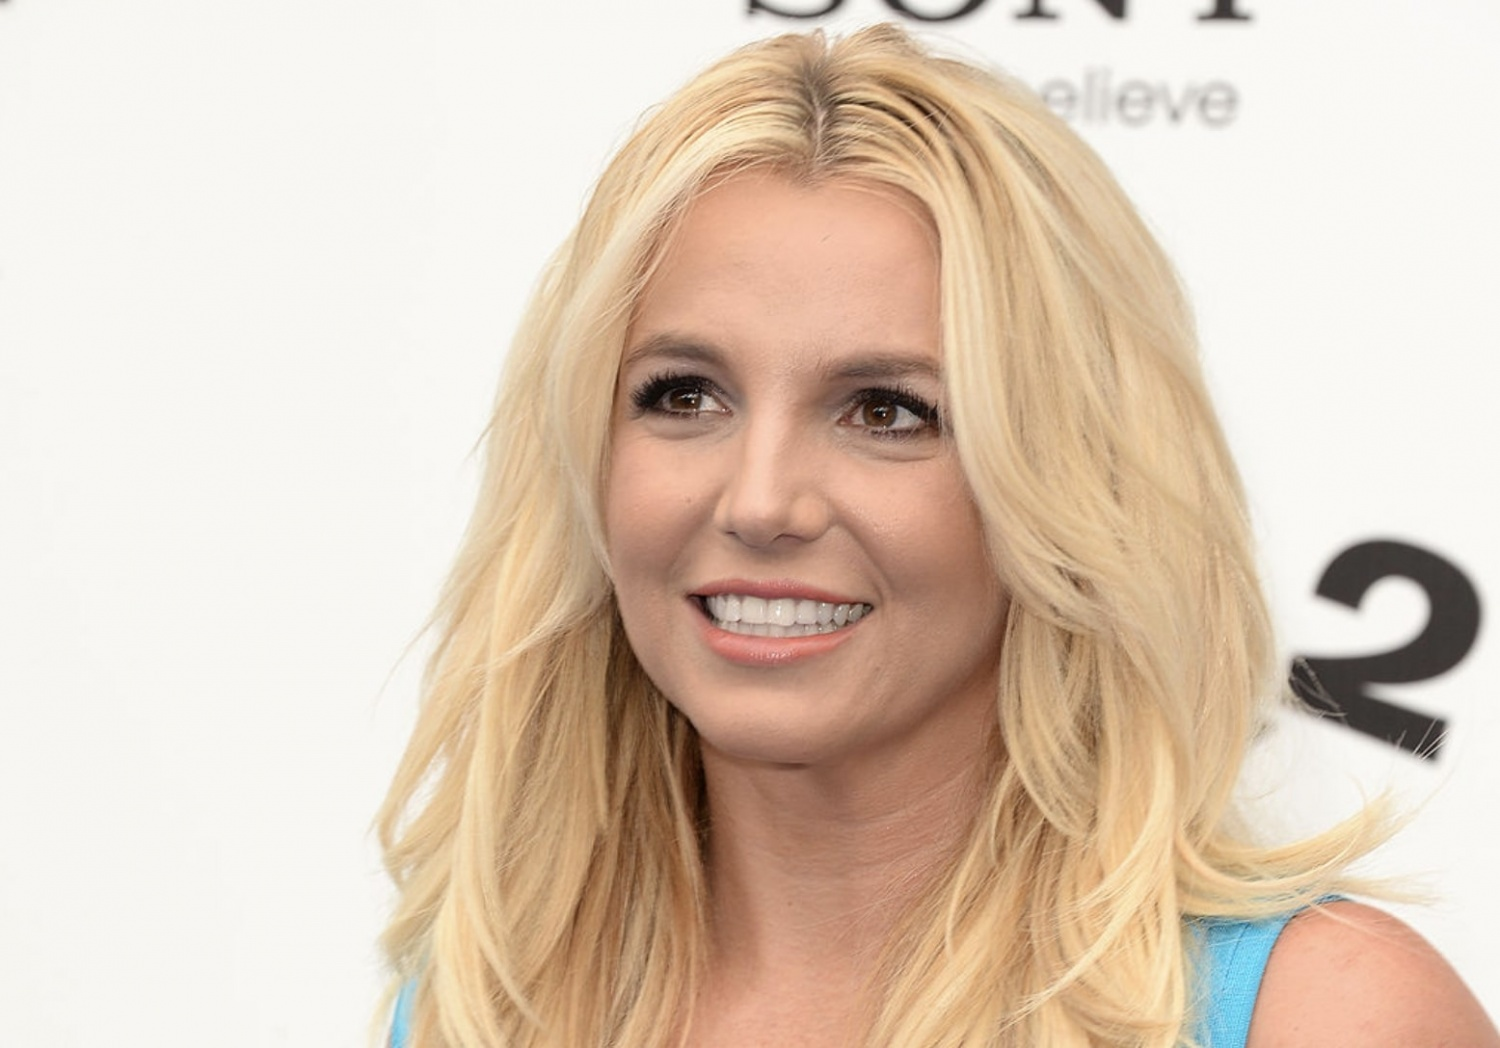 Britney Spears Dishes Out 'Insincere' Support From Close Relatives, Points Out Sister Jamie Lynn For Not Standing Up For Her